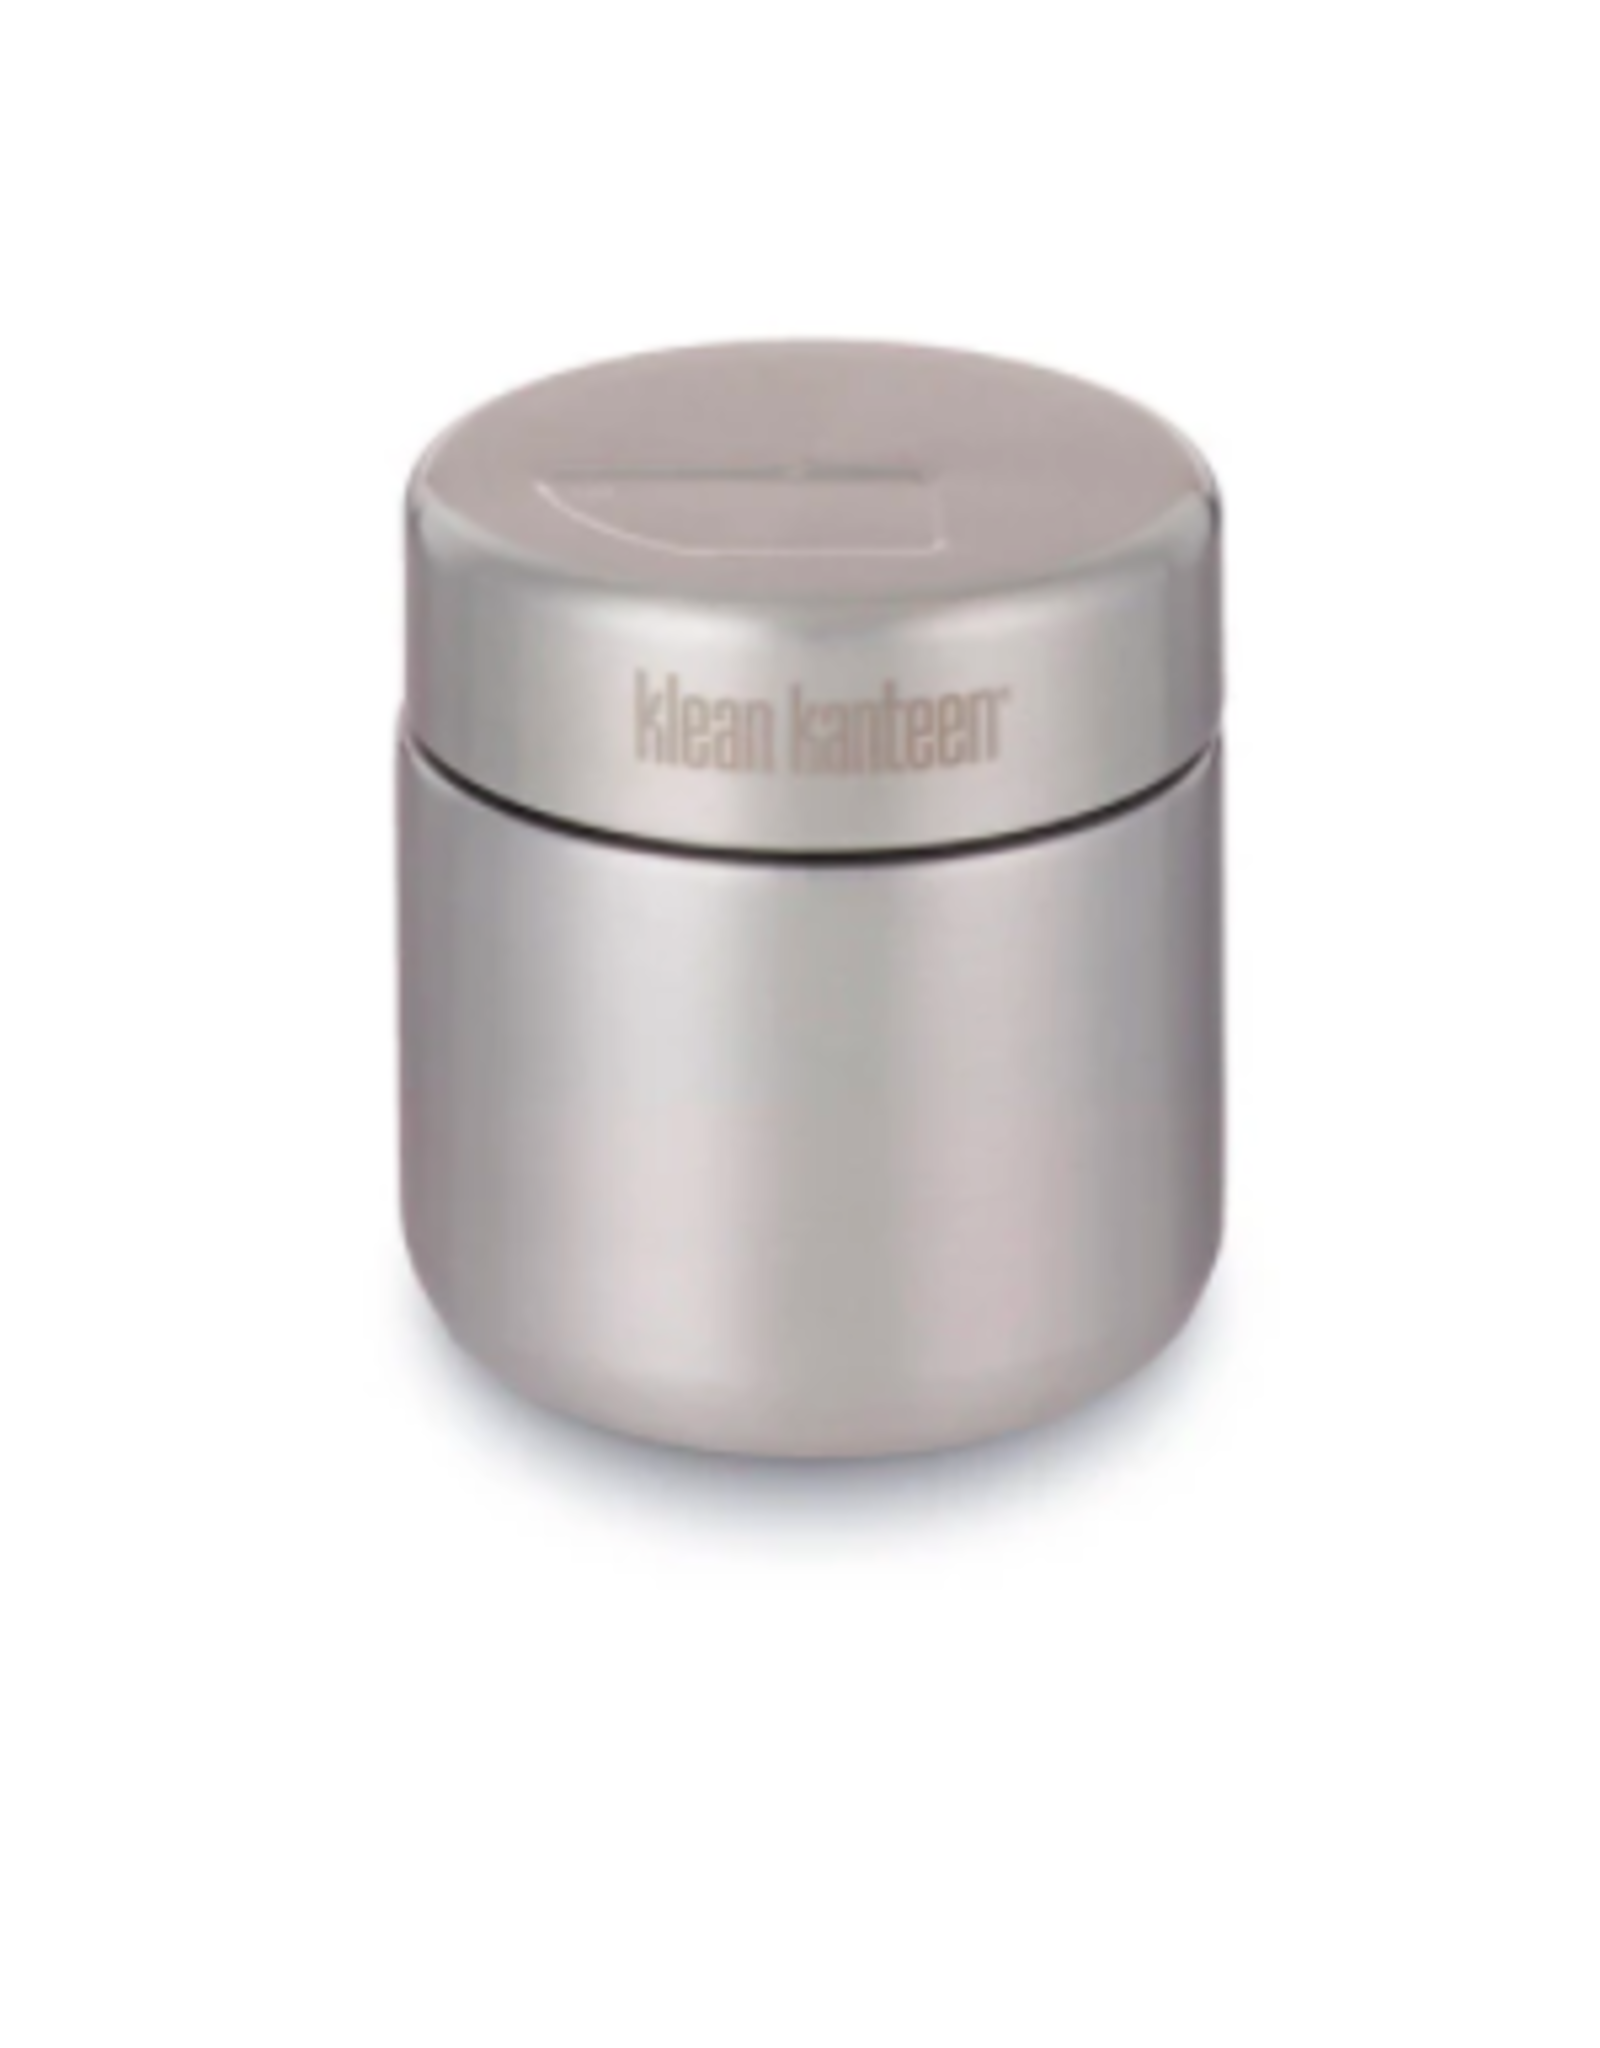 Klean Kanteen Non-Insulated Food Containers